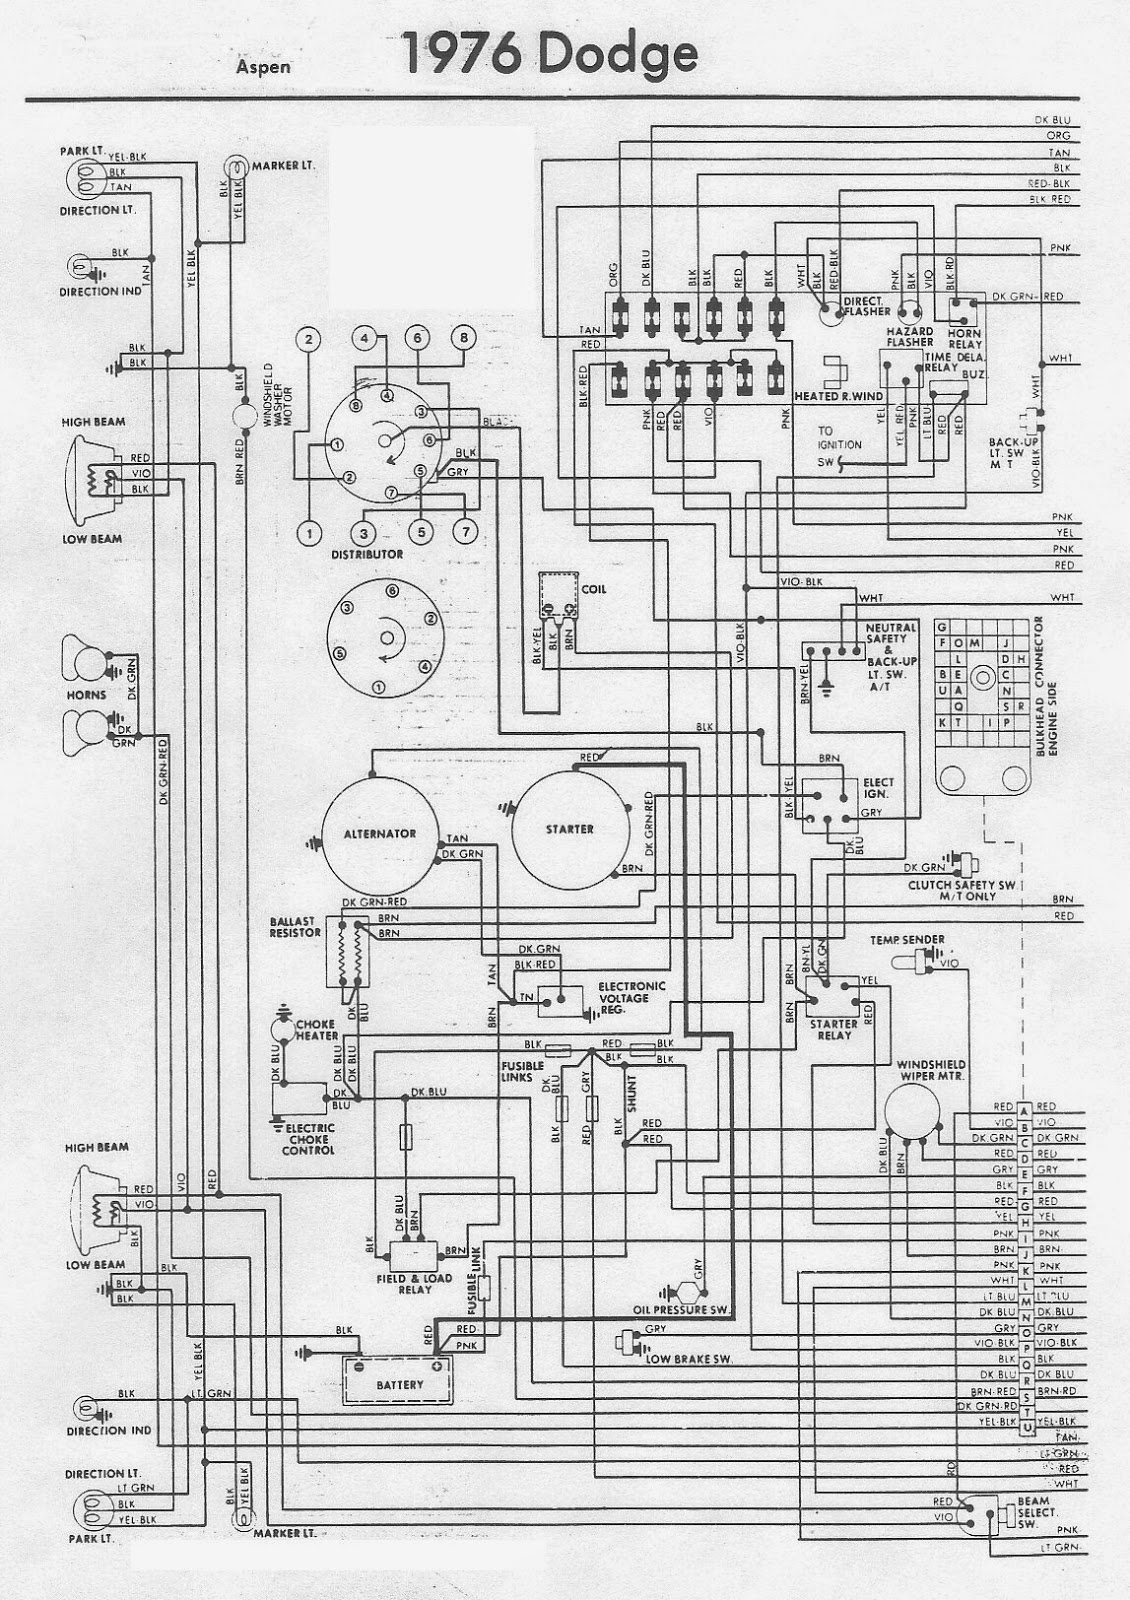 wiring diagram electrical system circuit 1976 dodge aspen user guide 1979 dodge aspen wiring diagram 1979 dodge aspen wiring diagram [ 1130 x 1600 Pixel ]